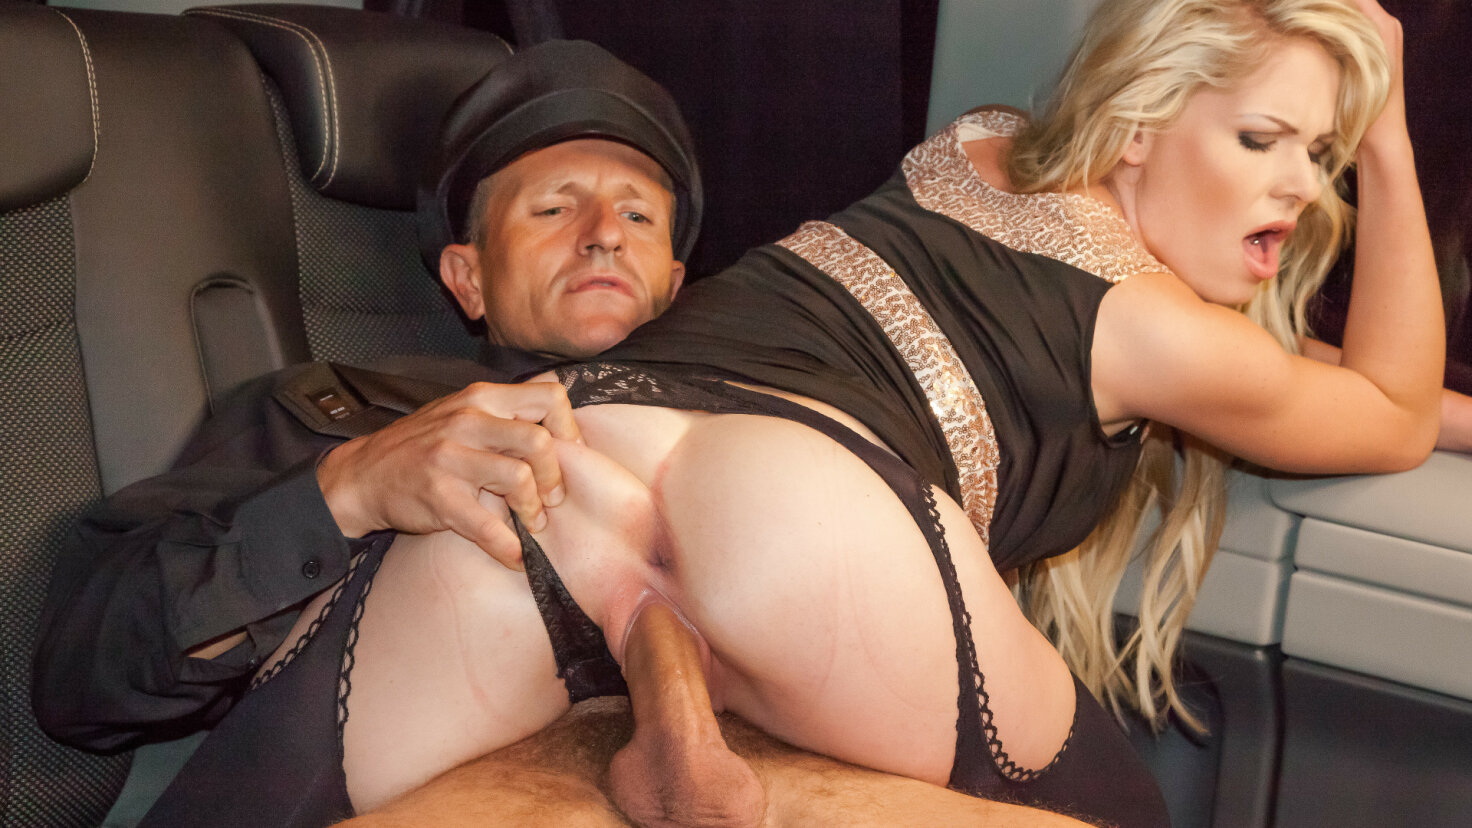 Beautiful Czech blonde in stockings gets drilled in the backseat of the car